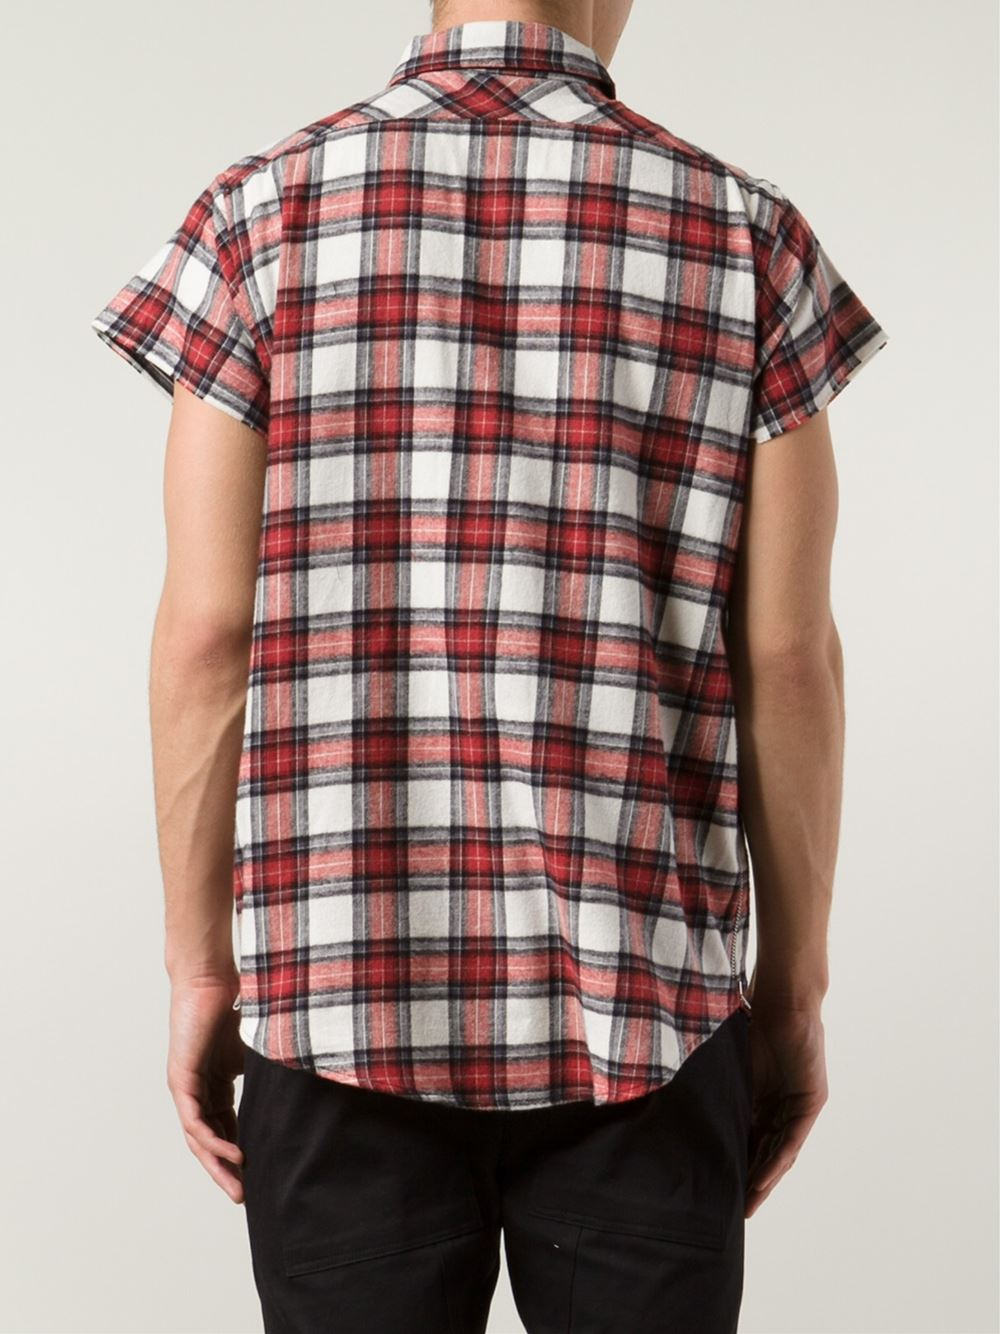 Lyst Fear Of God Short Sleeve Plaid Shirt In Red For Men: short sleeve plaid shirts